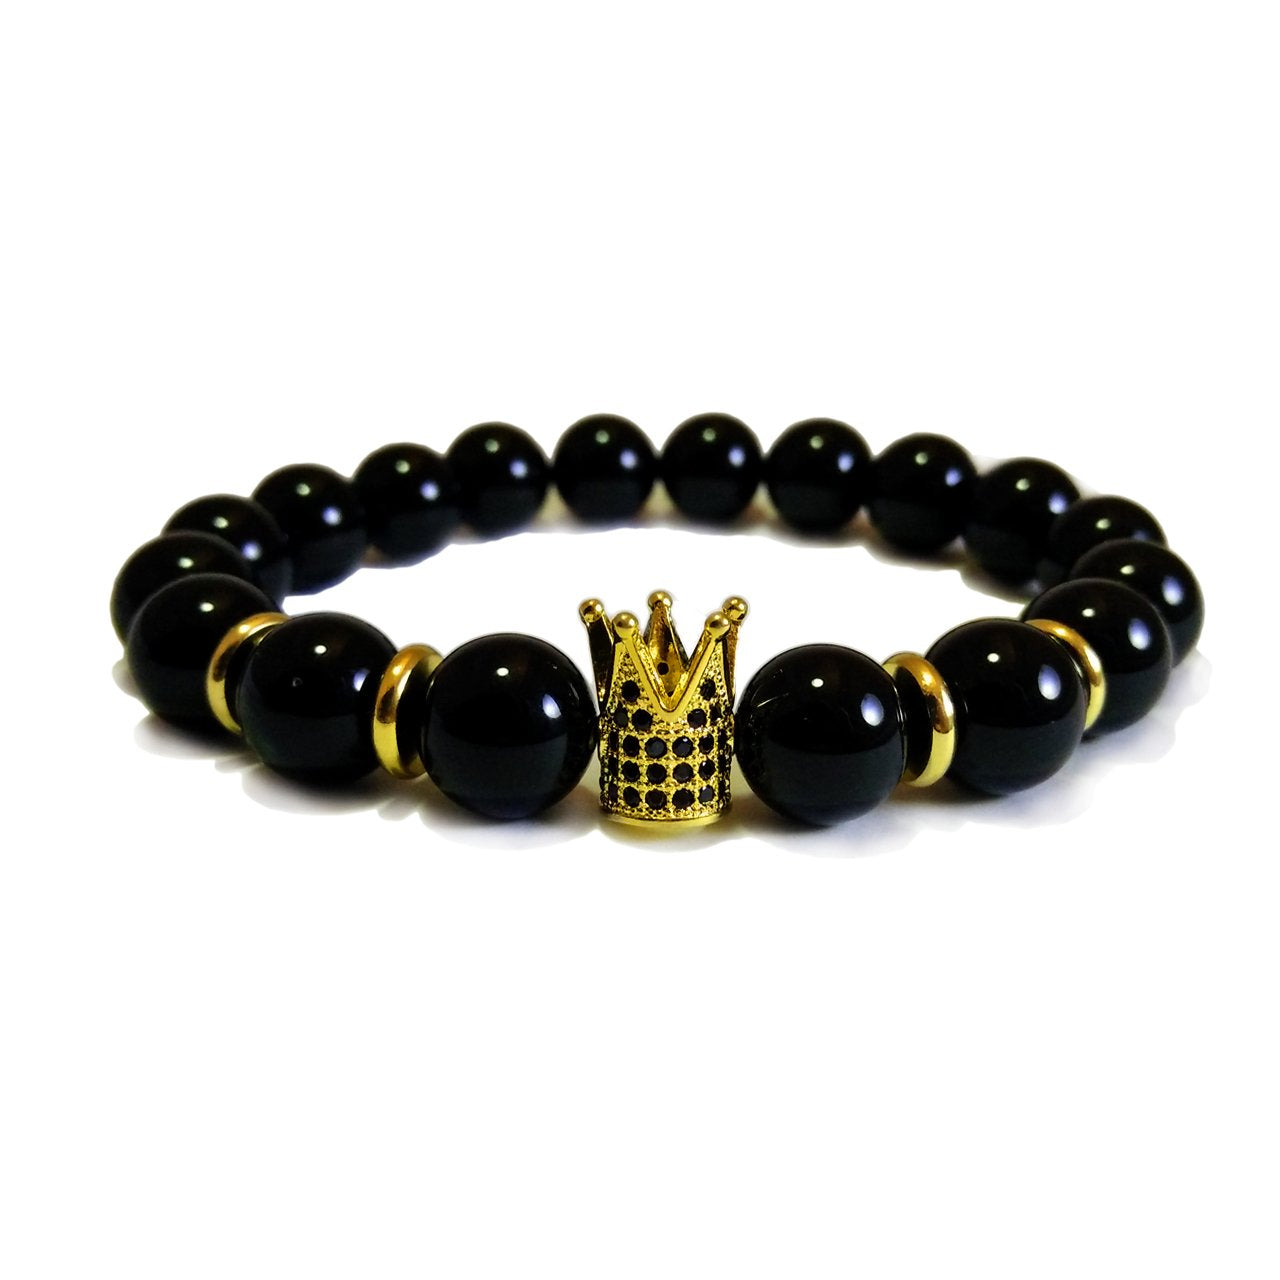 King crown Black Agate